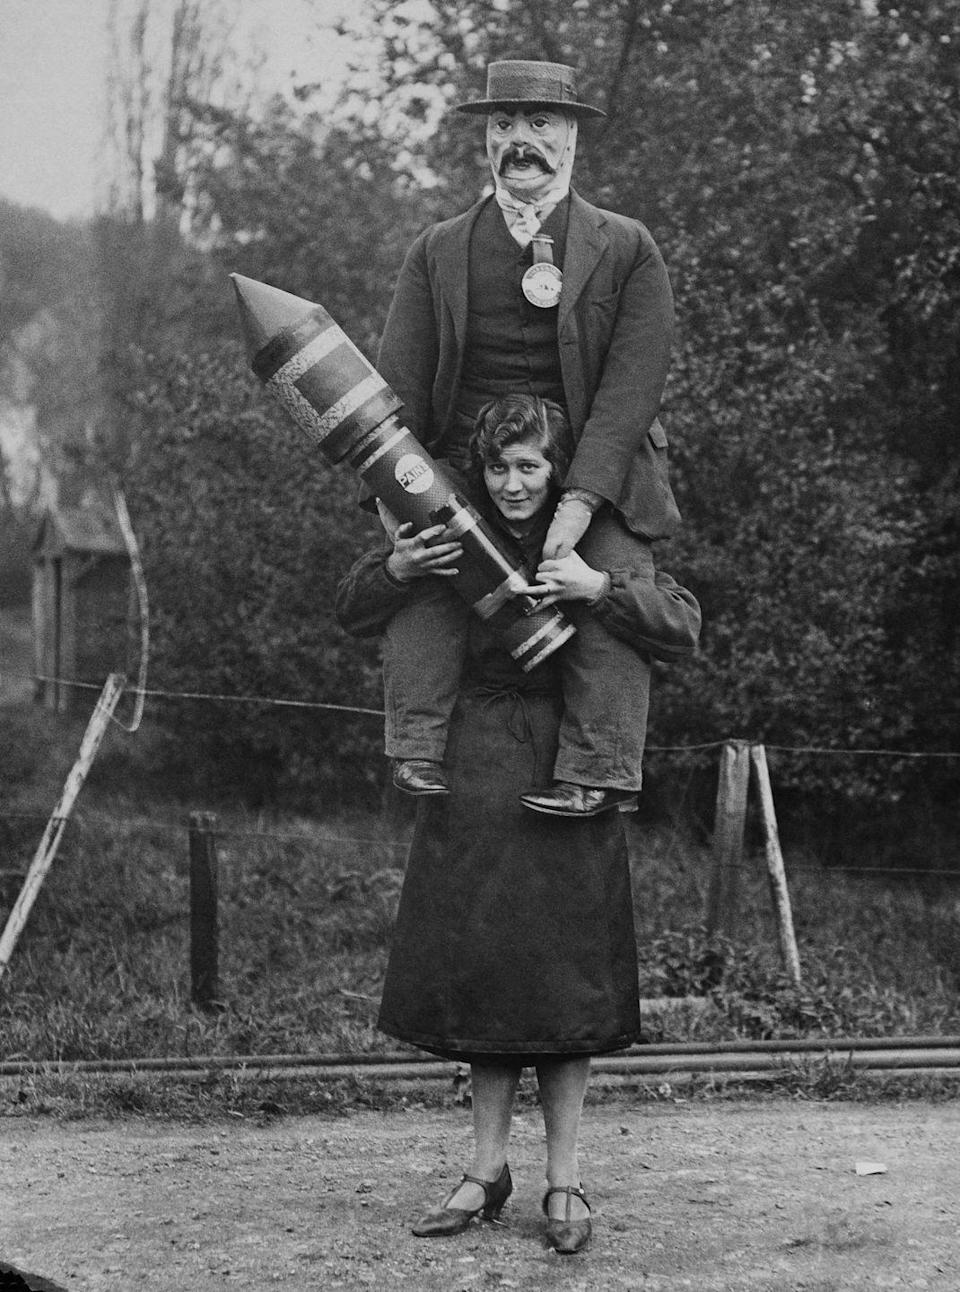 <p>Not entirely sure what this fireworks employee is doing with a dummy on her back, but if I had to see this cursed image, so do you.</p>